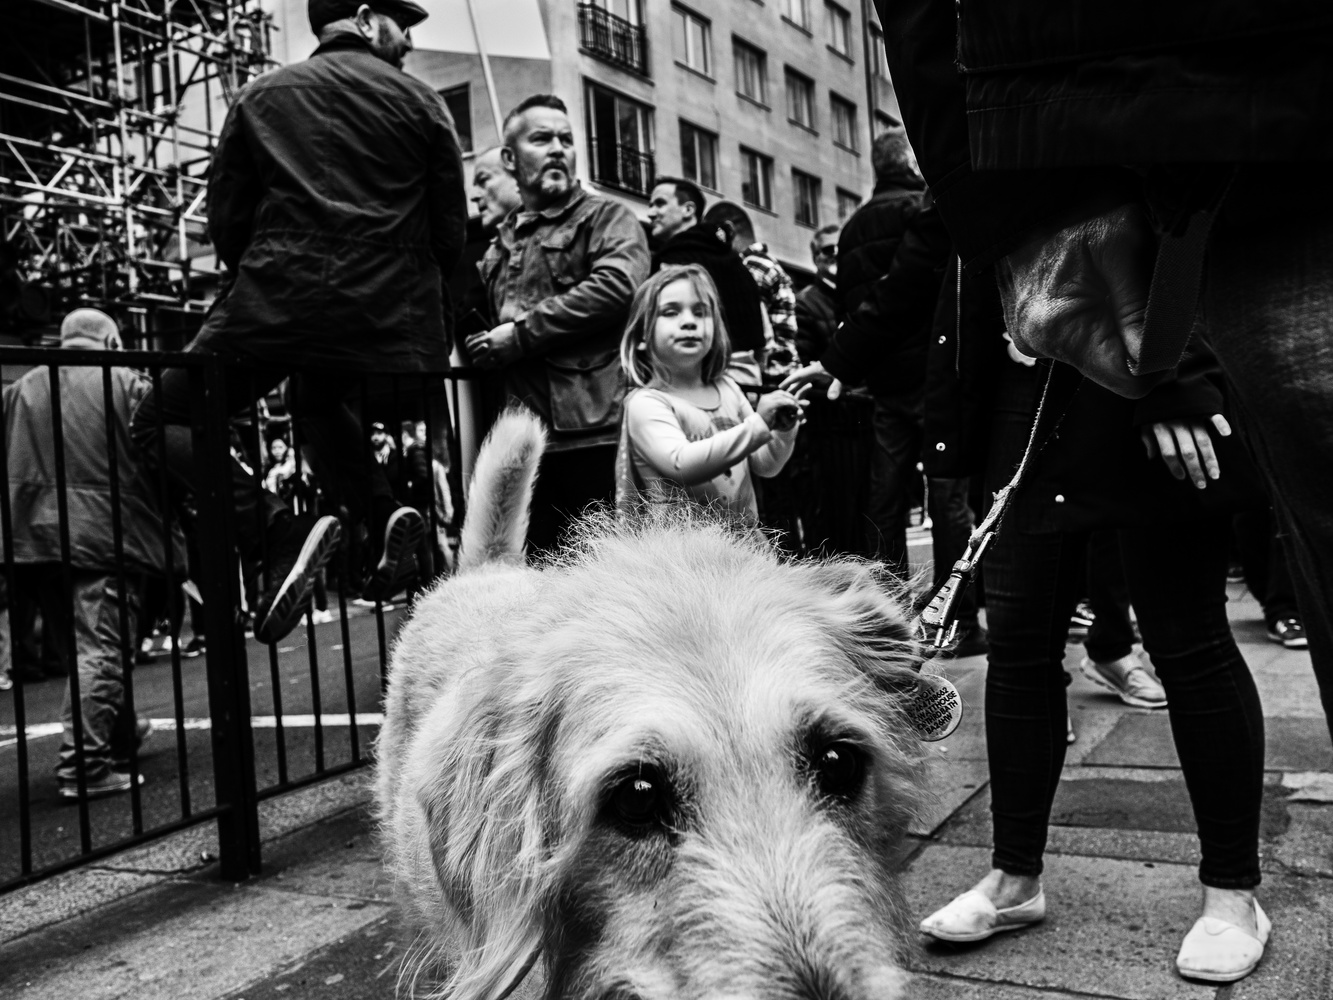 Dog's perspective by tomas doe